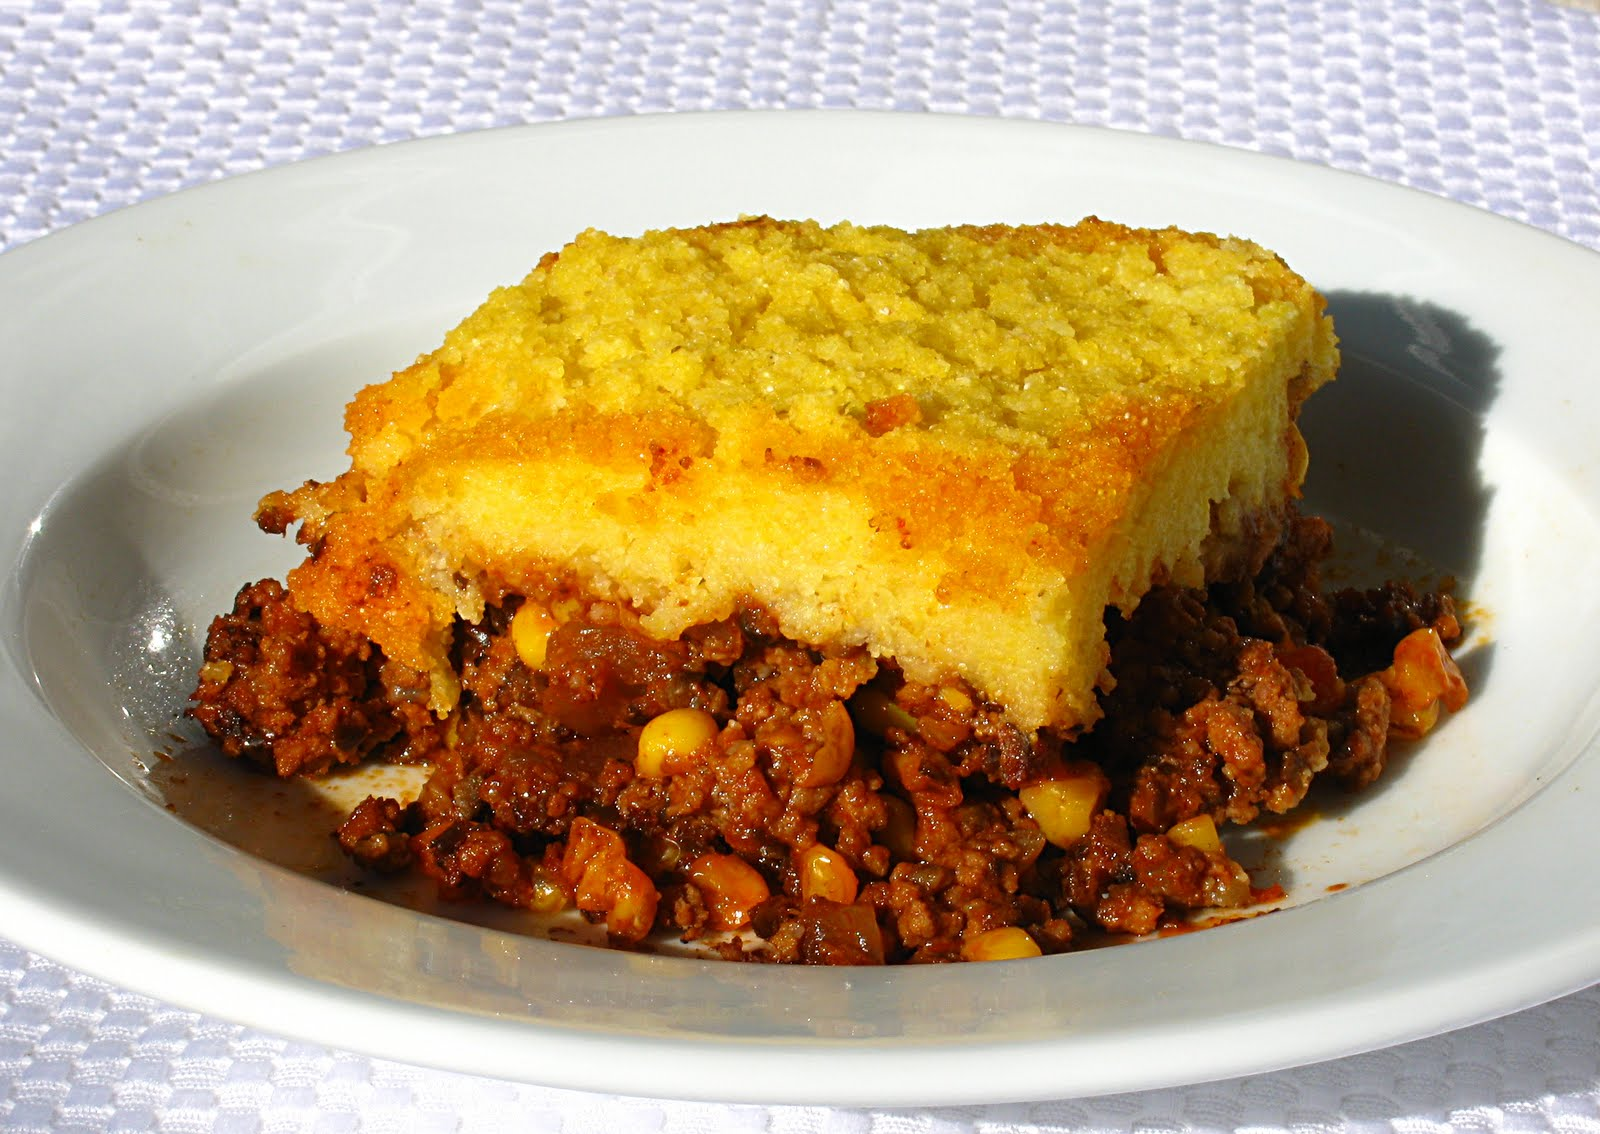 tamale taco tamale pie recipe vegetarian mini tamale pies retro tamale ...